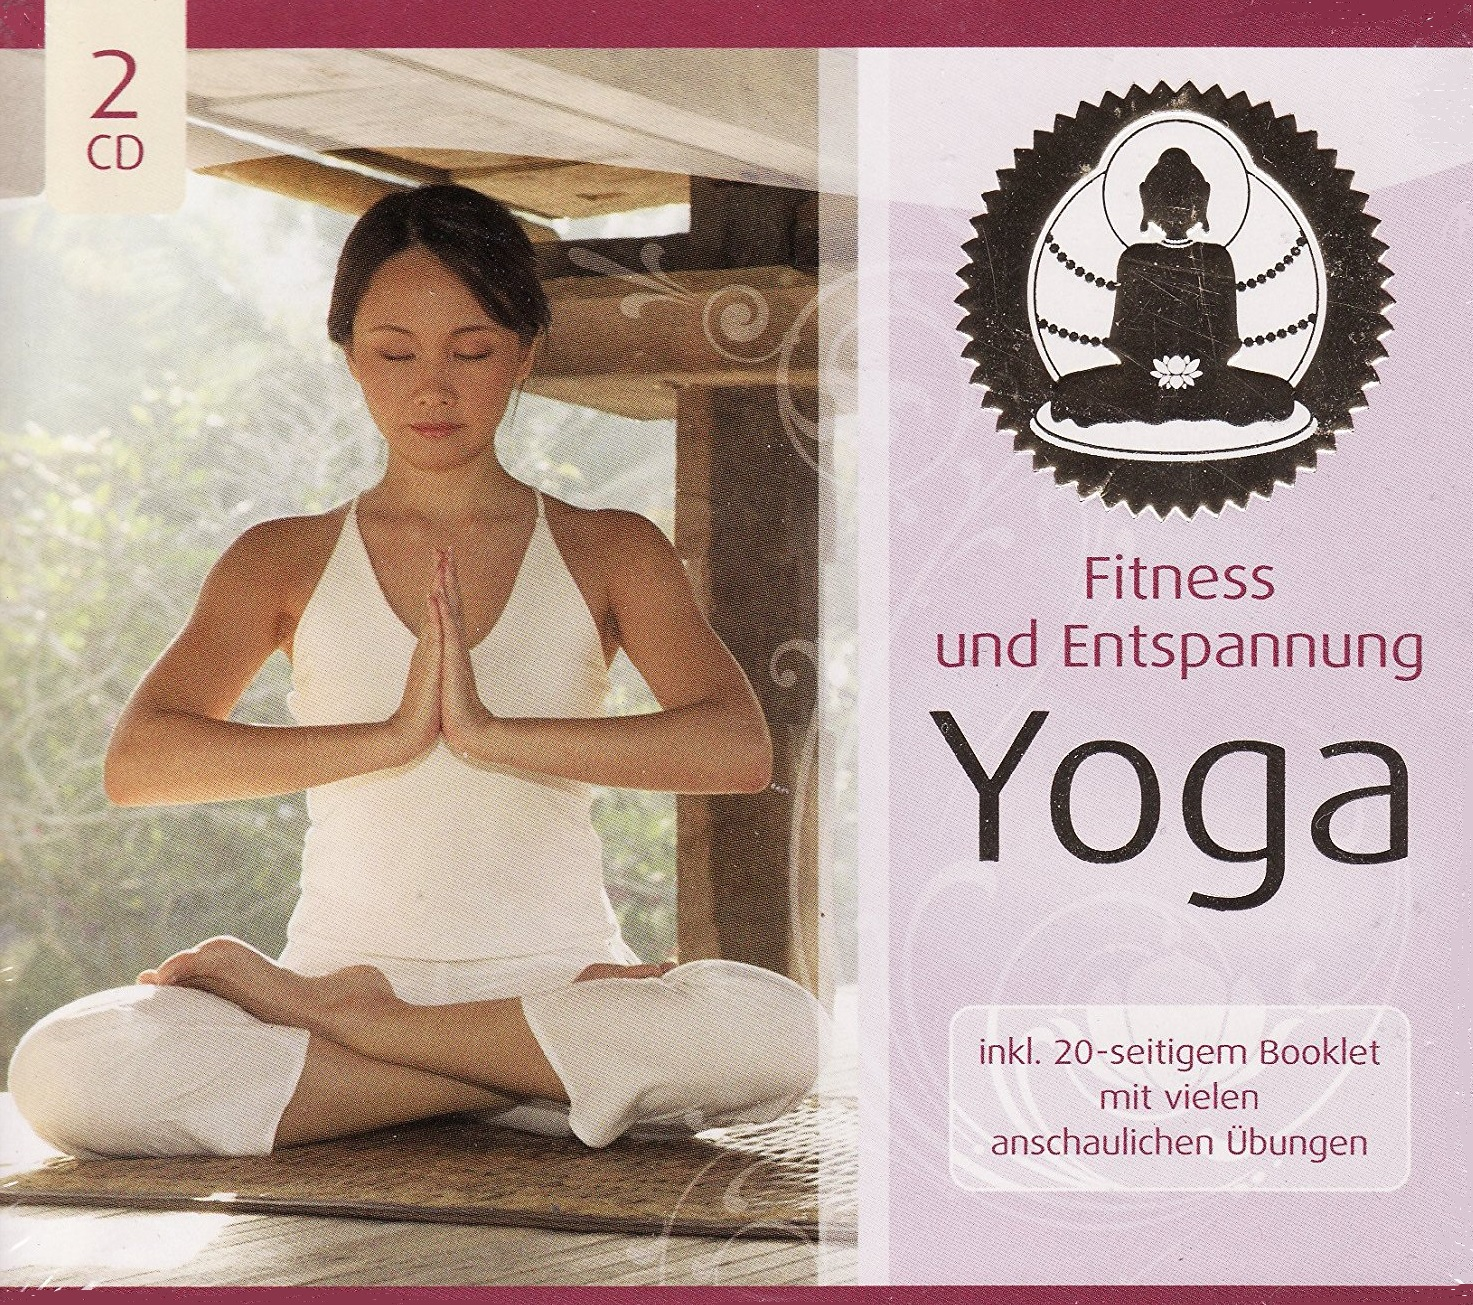 Doppel-CD * YOGA * Fitness und Entspannung * in...